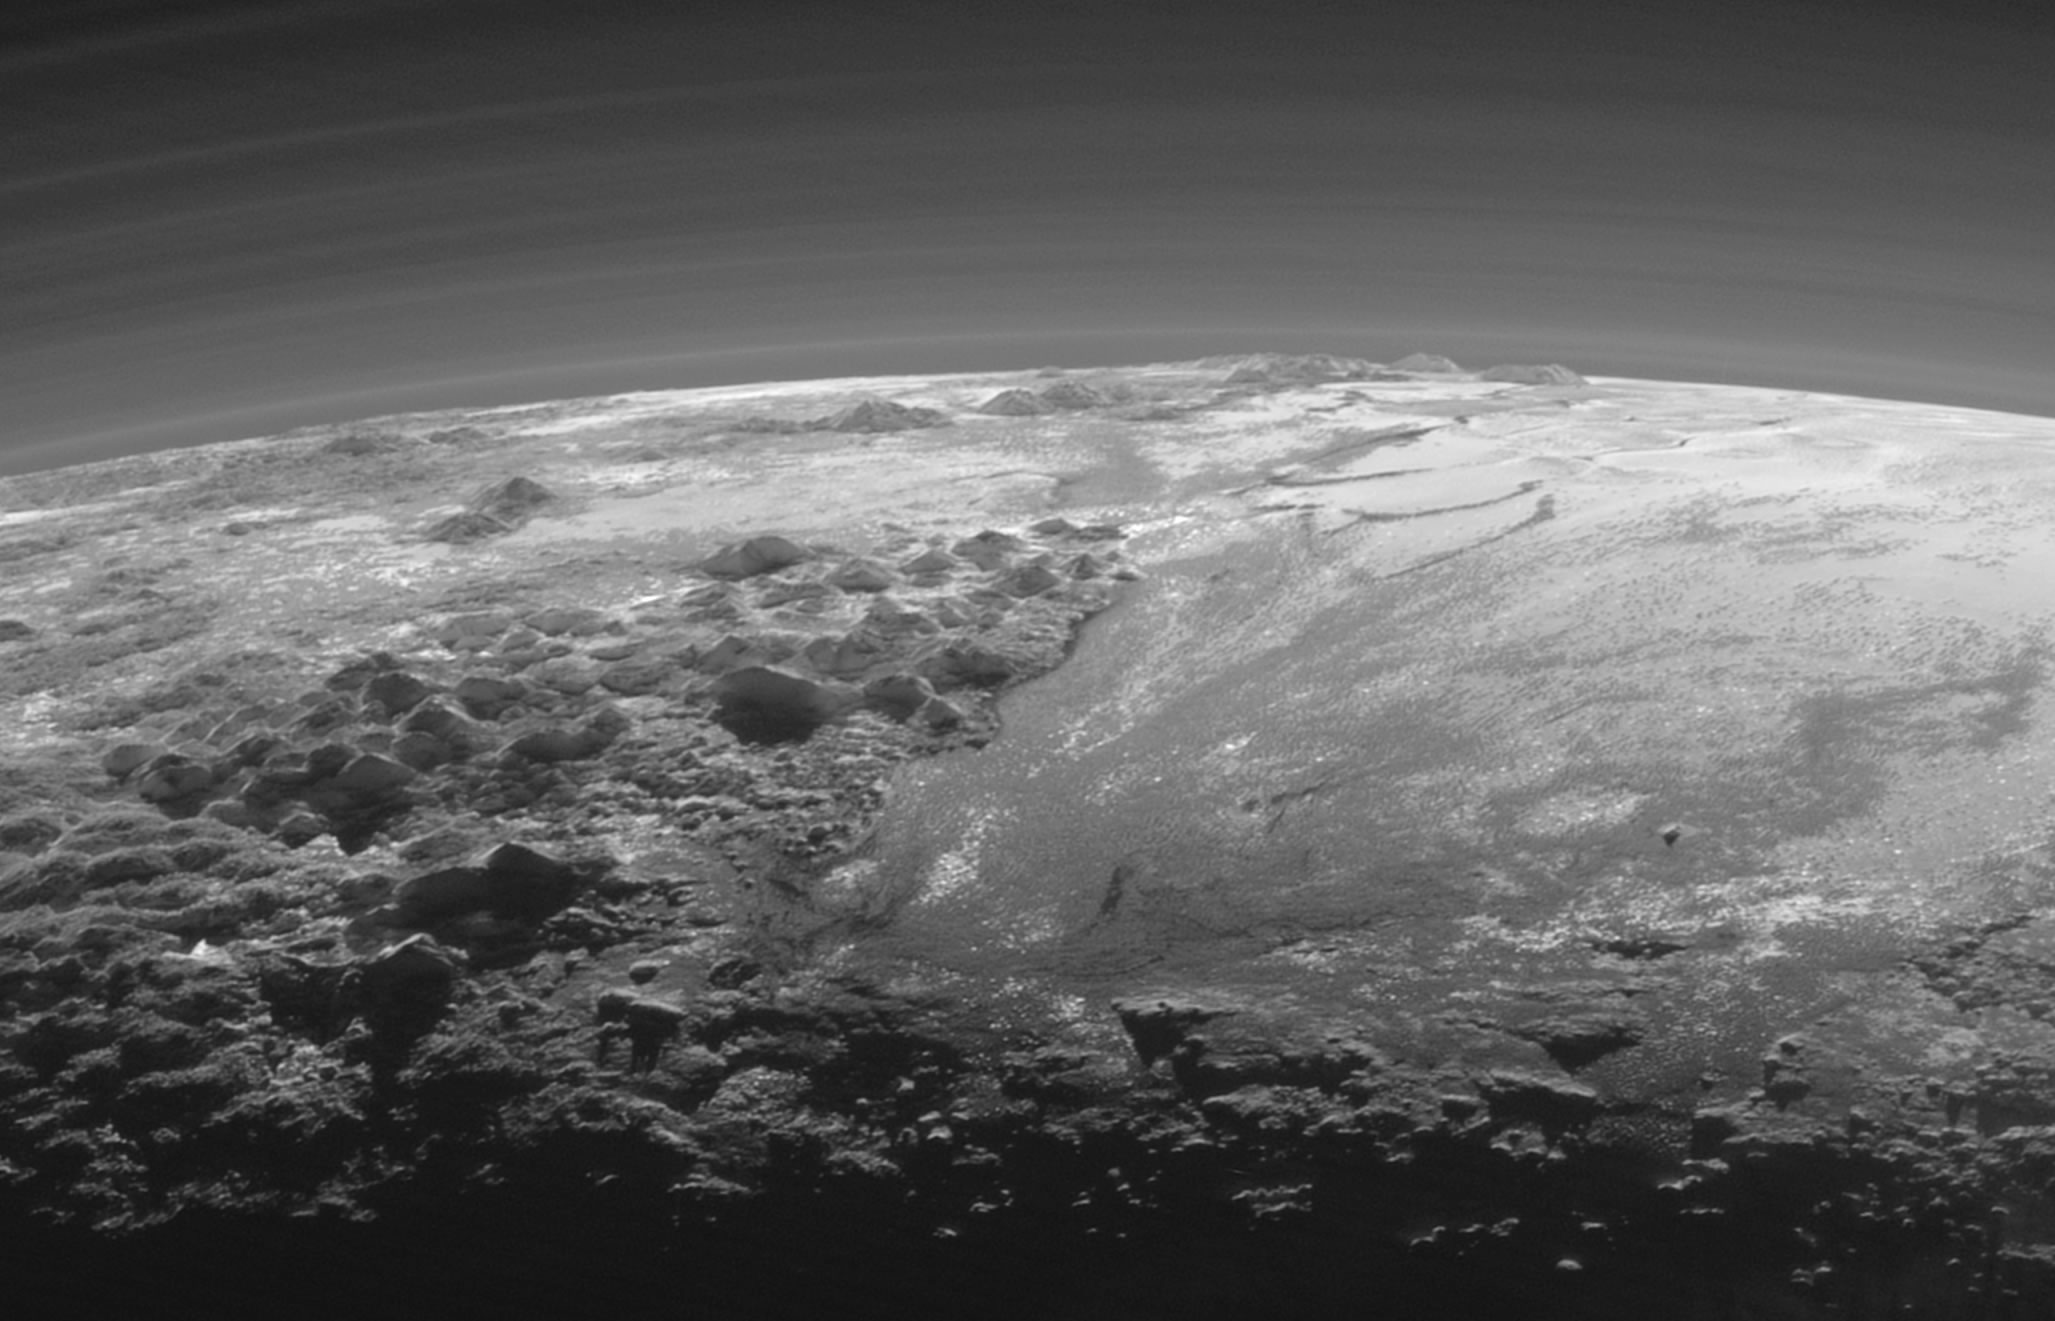 Mountains on Pluto